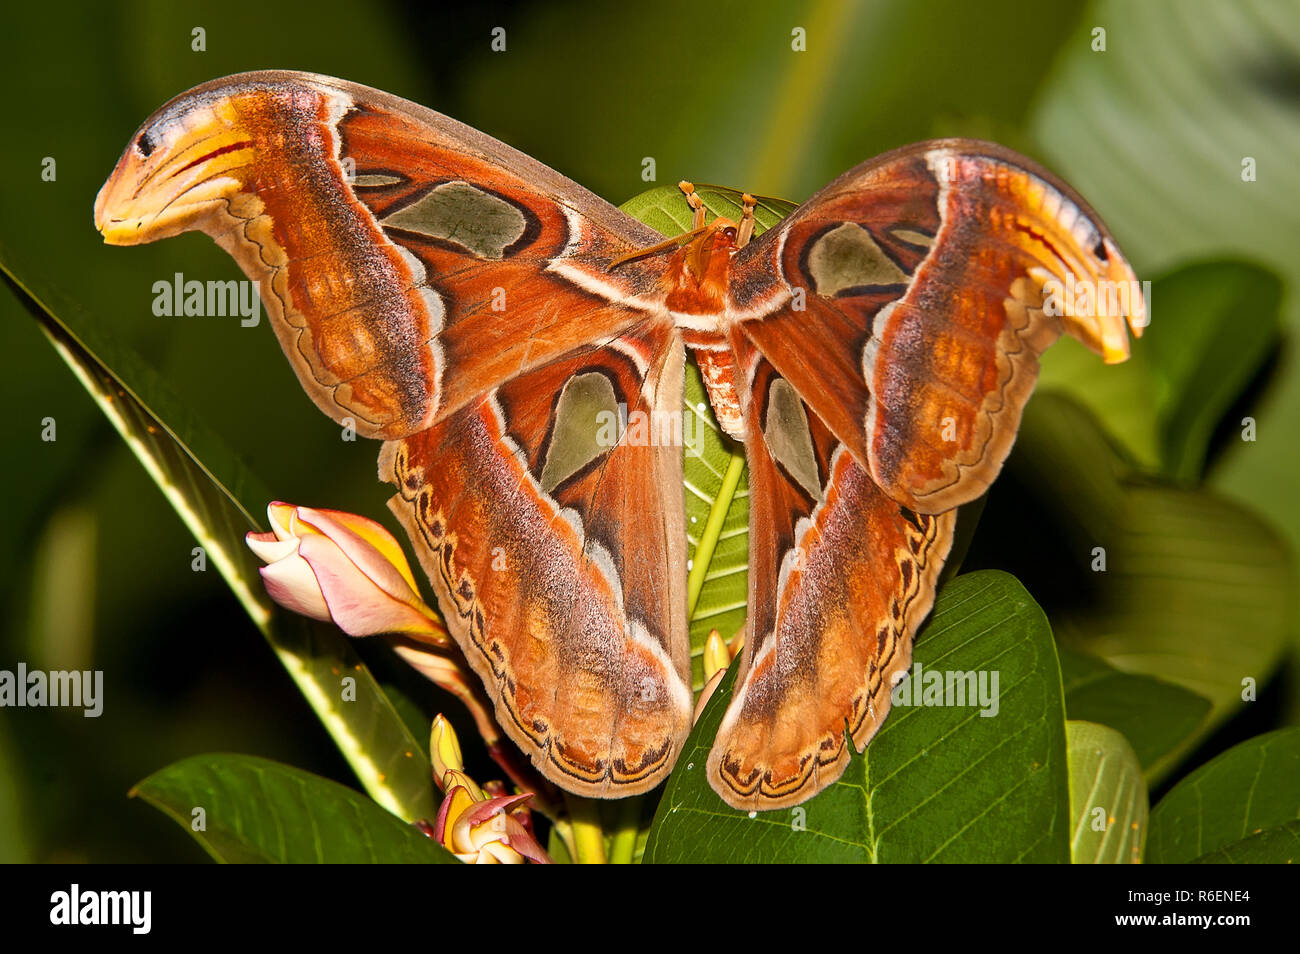 Night Butterfly Atlas Moth Or Attacus Atlas The Biggest Butterfly, Thailand - Stock Image